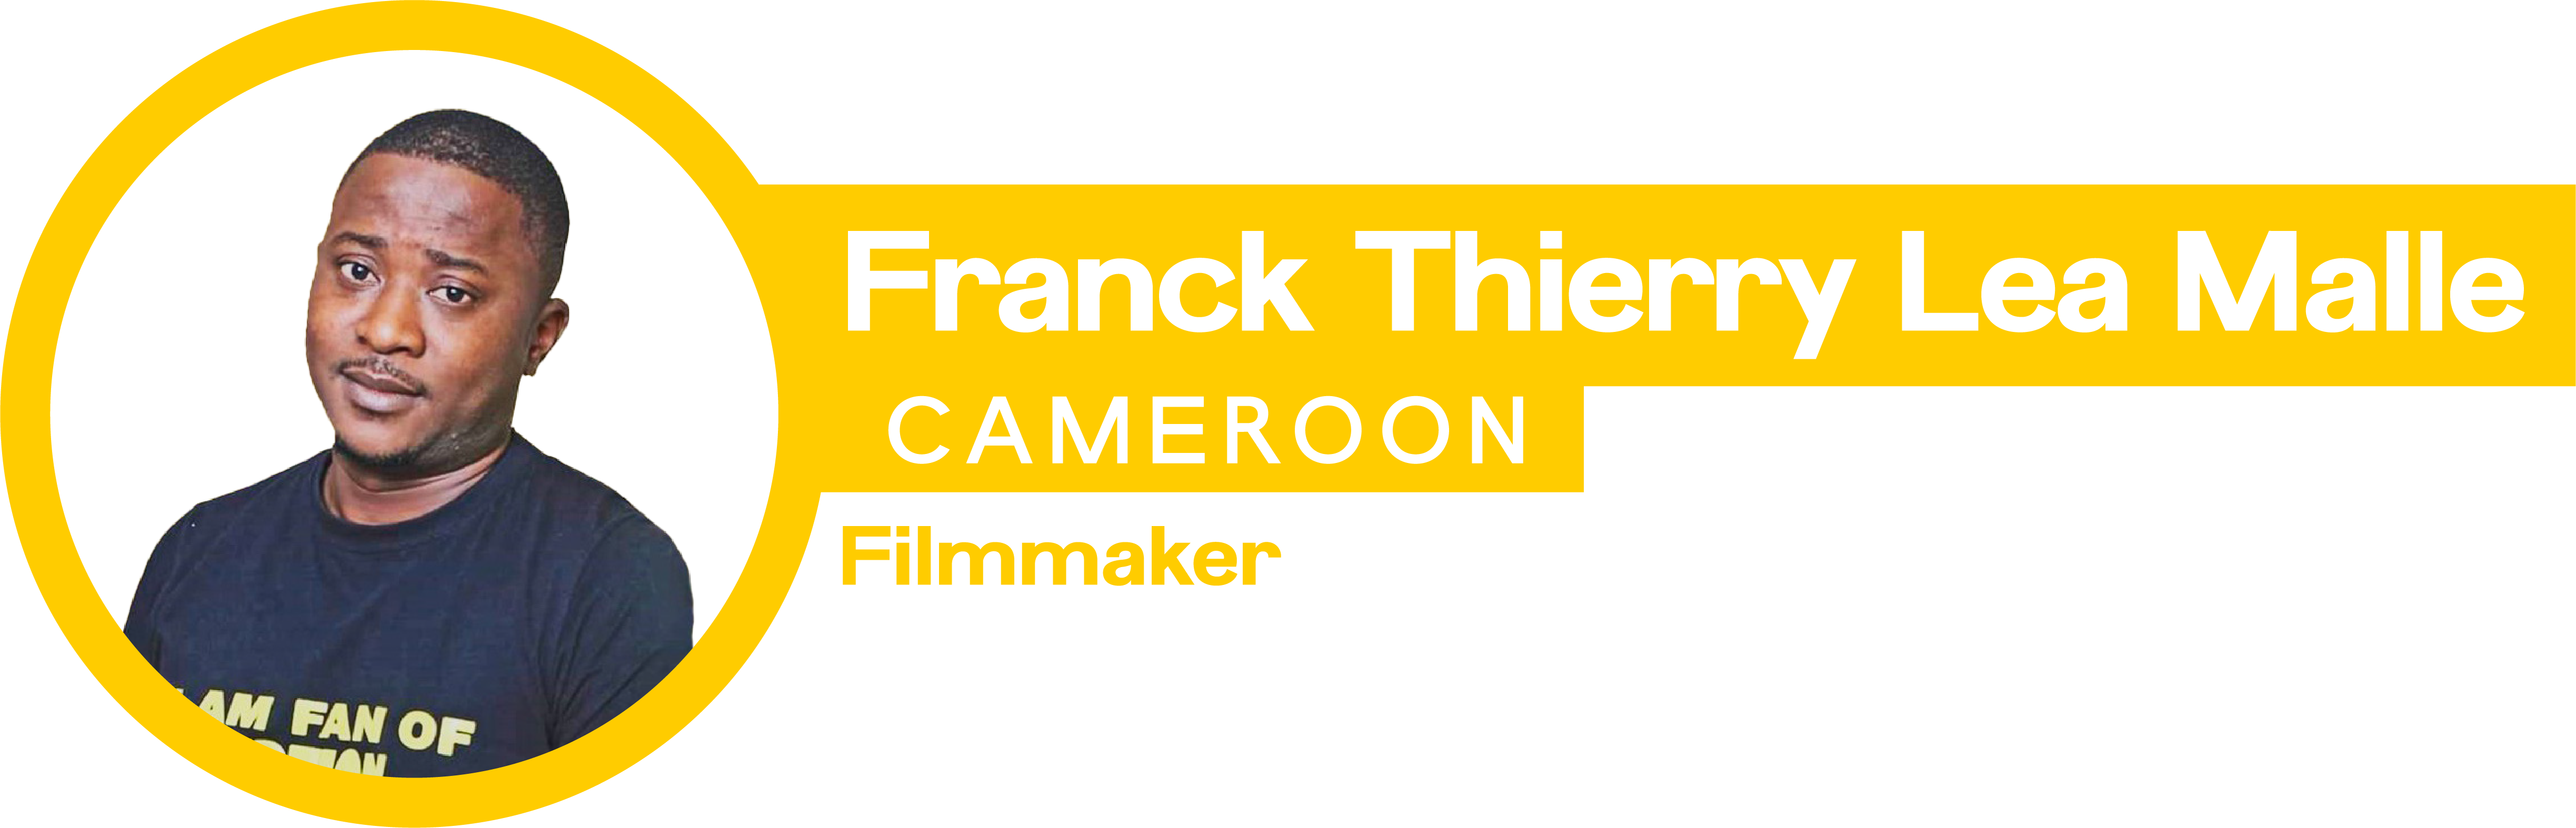 Franck Thierry Lea Malle